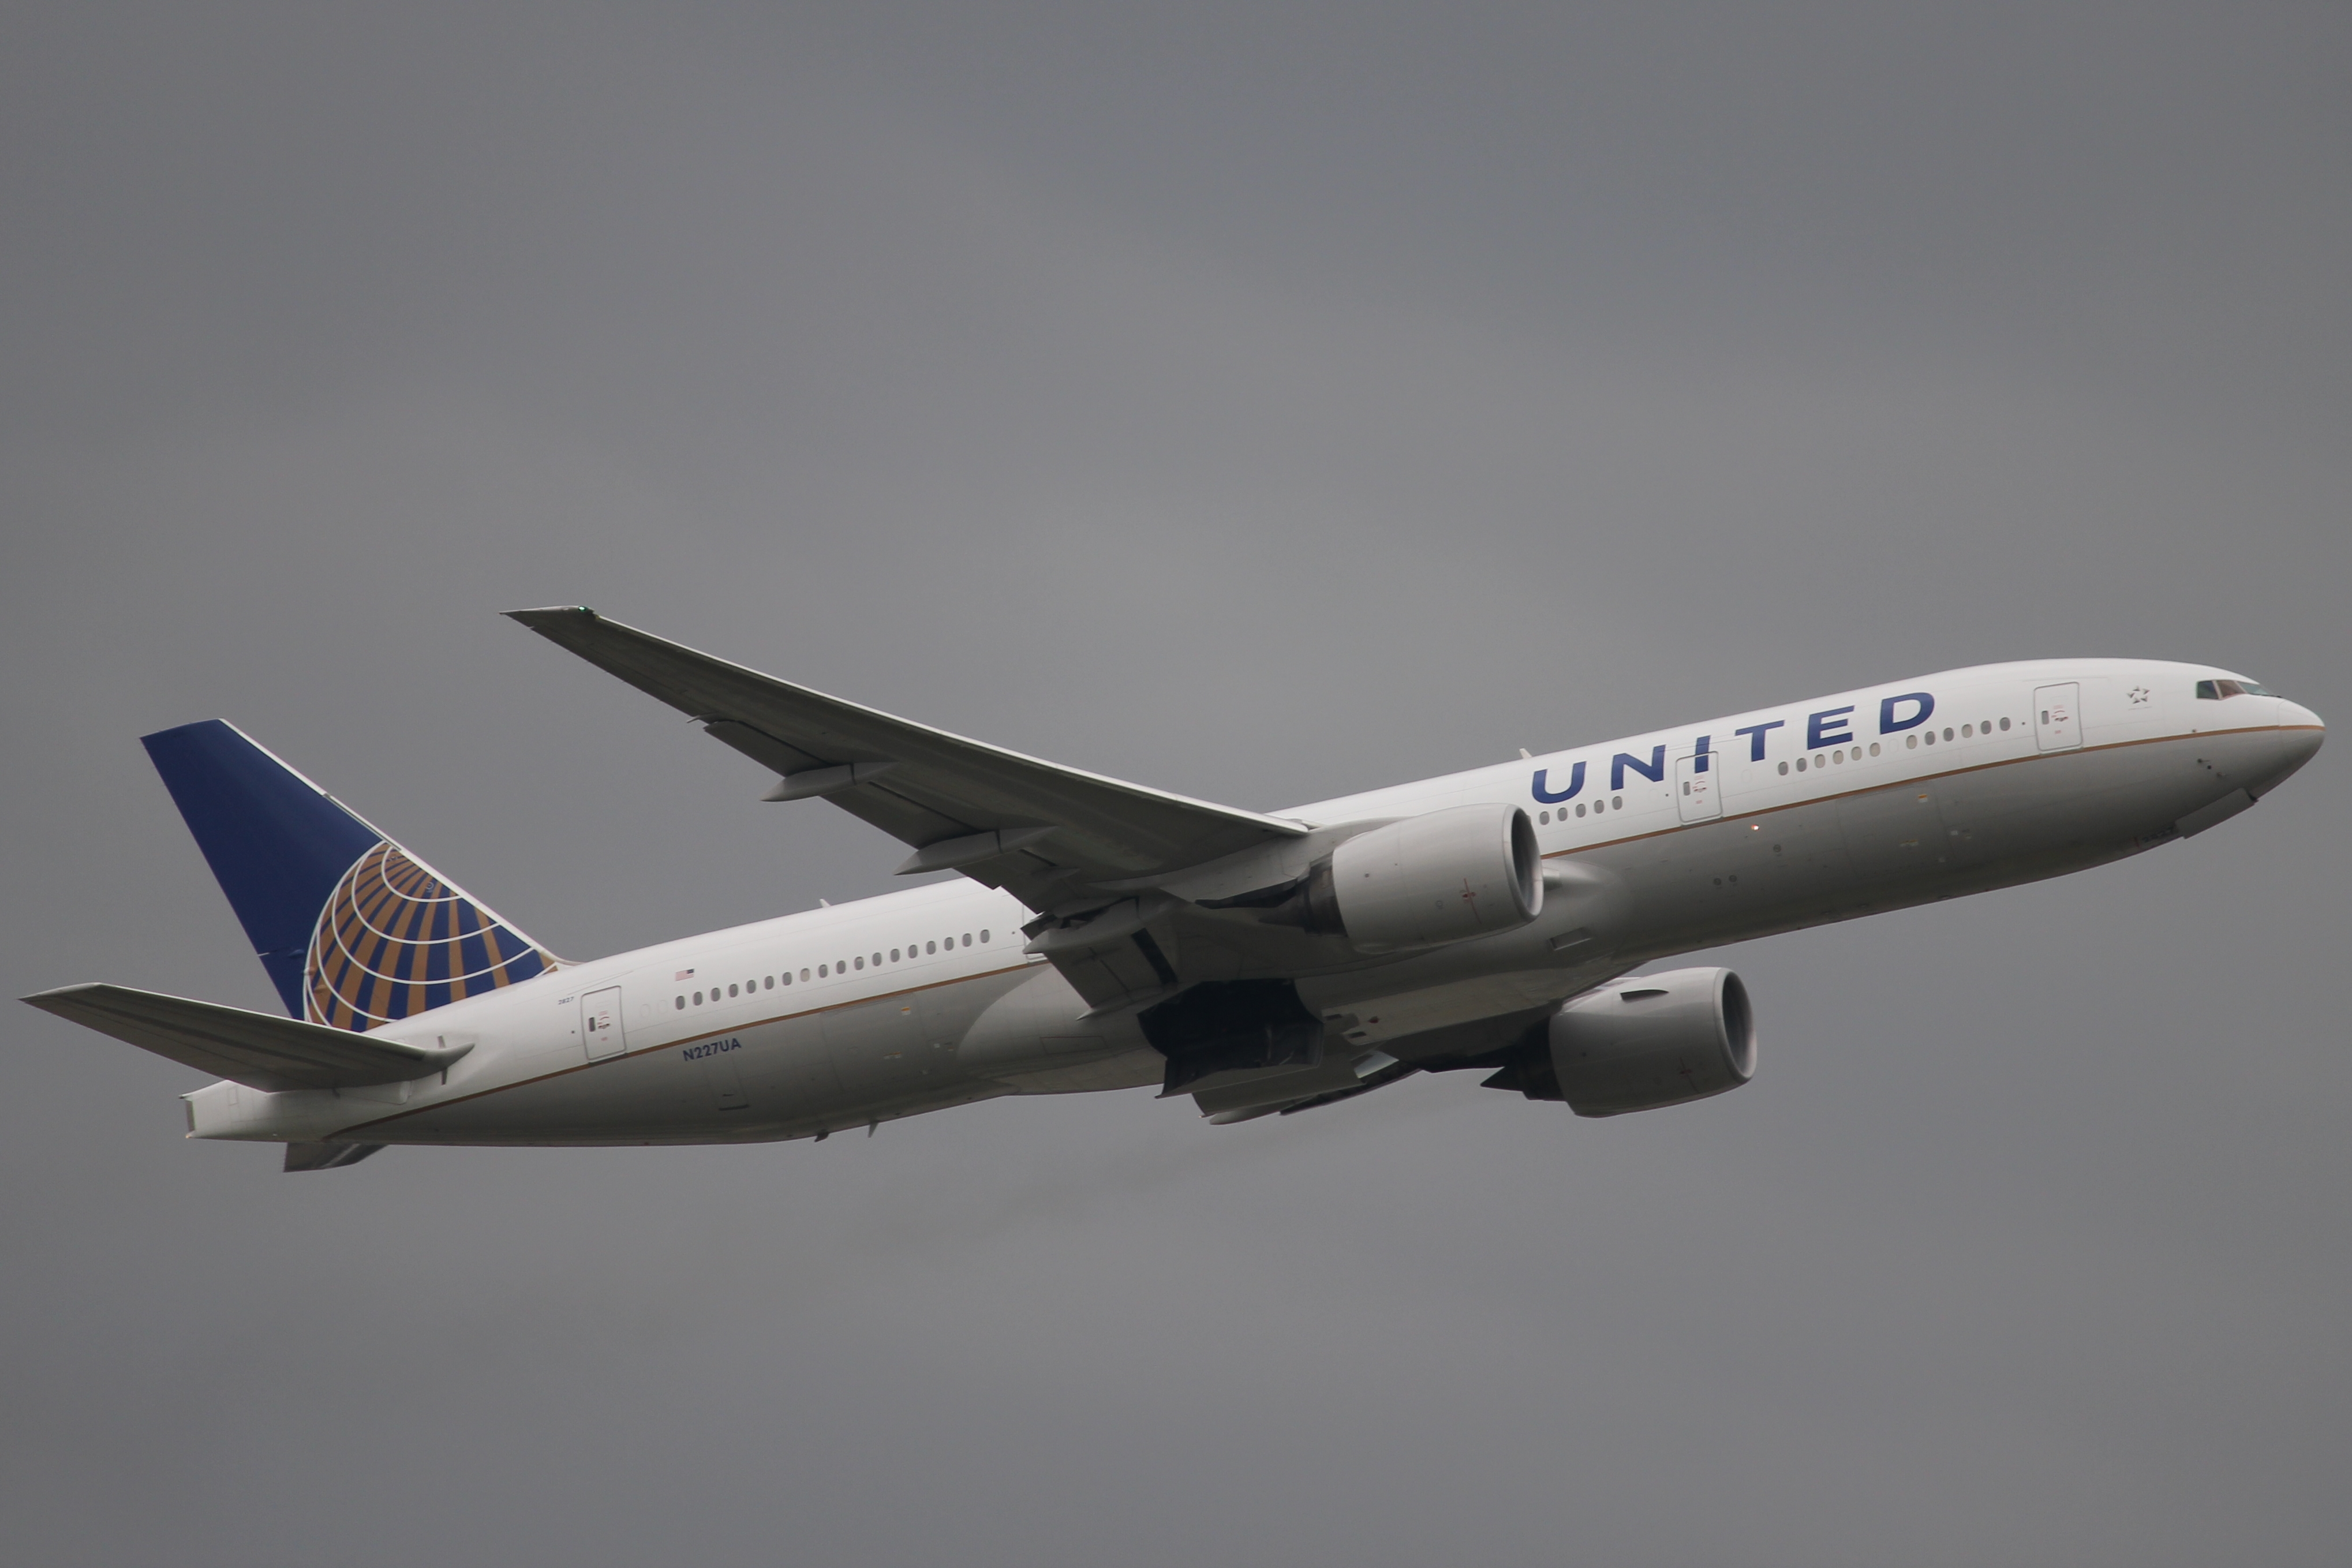 File:United 772 N227UA.JPG